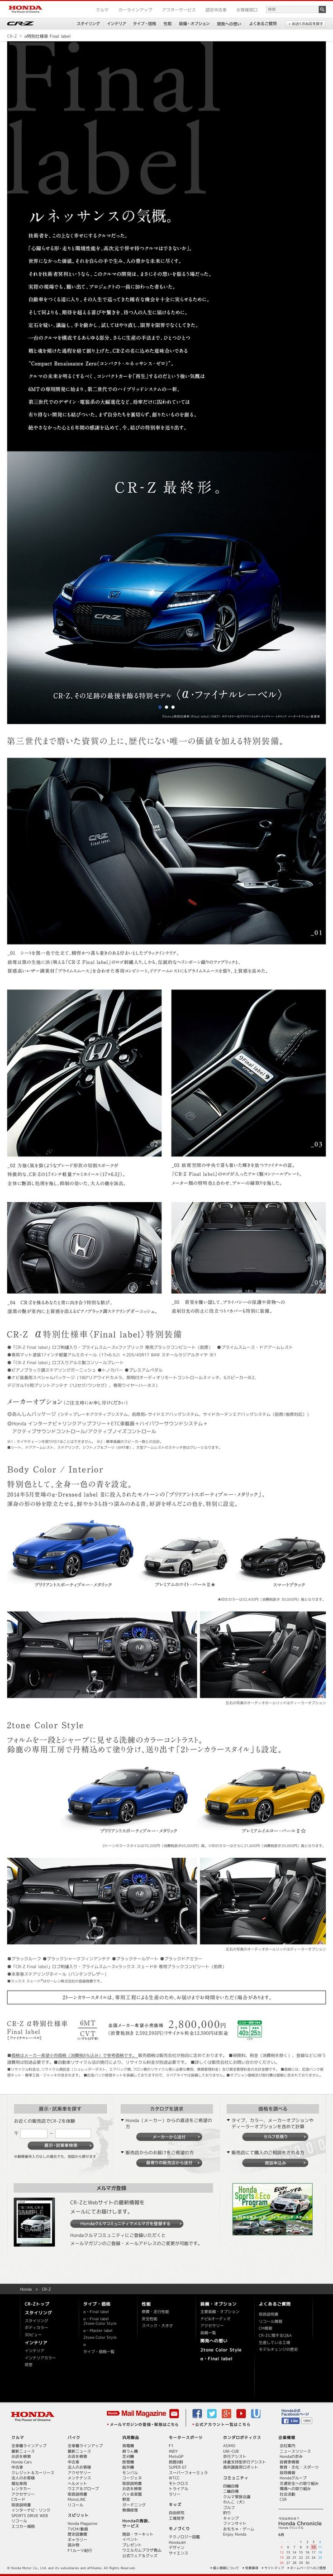 Website 'http://www.honda.co.jp/CR-Z/final_label/' snapped on Snapito.com